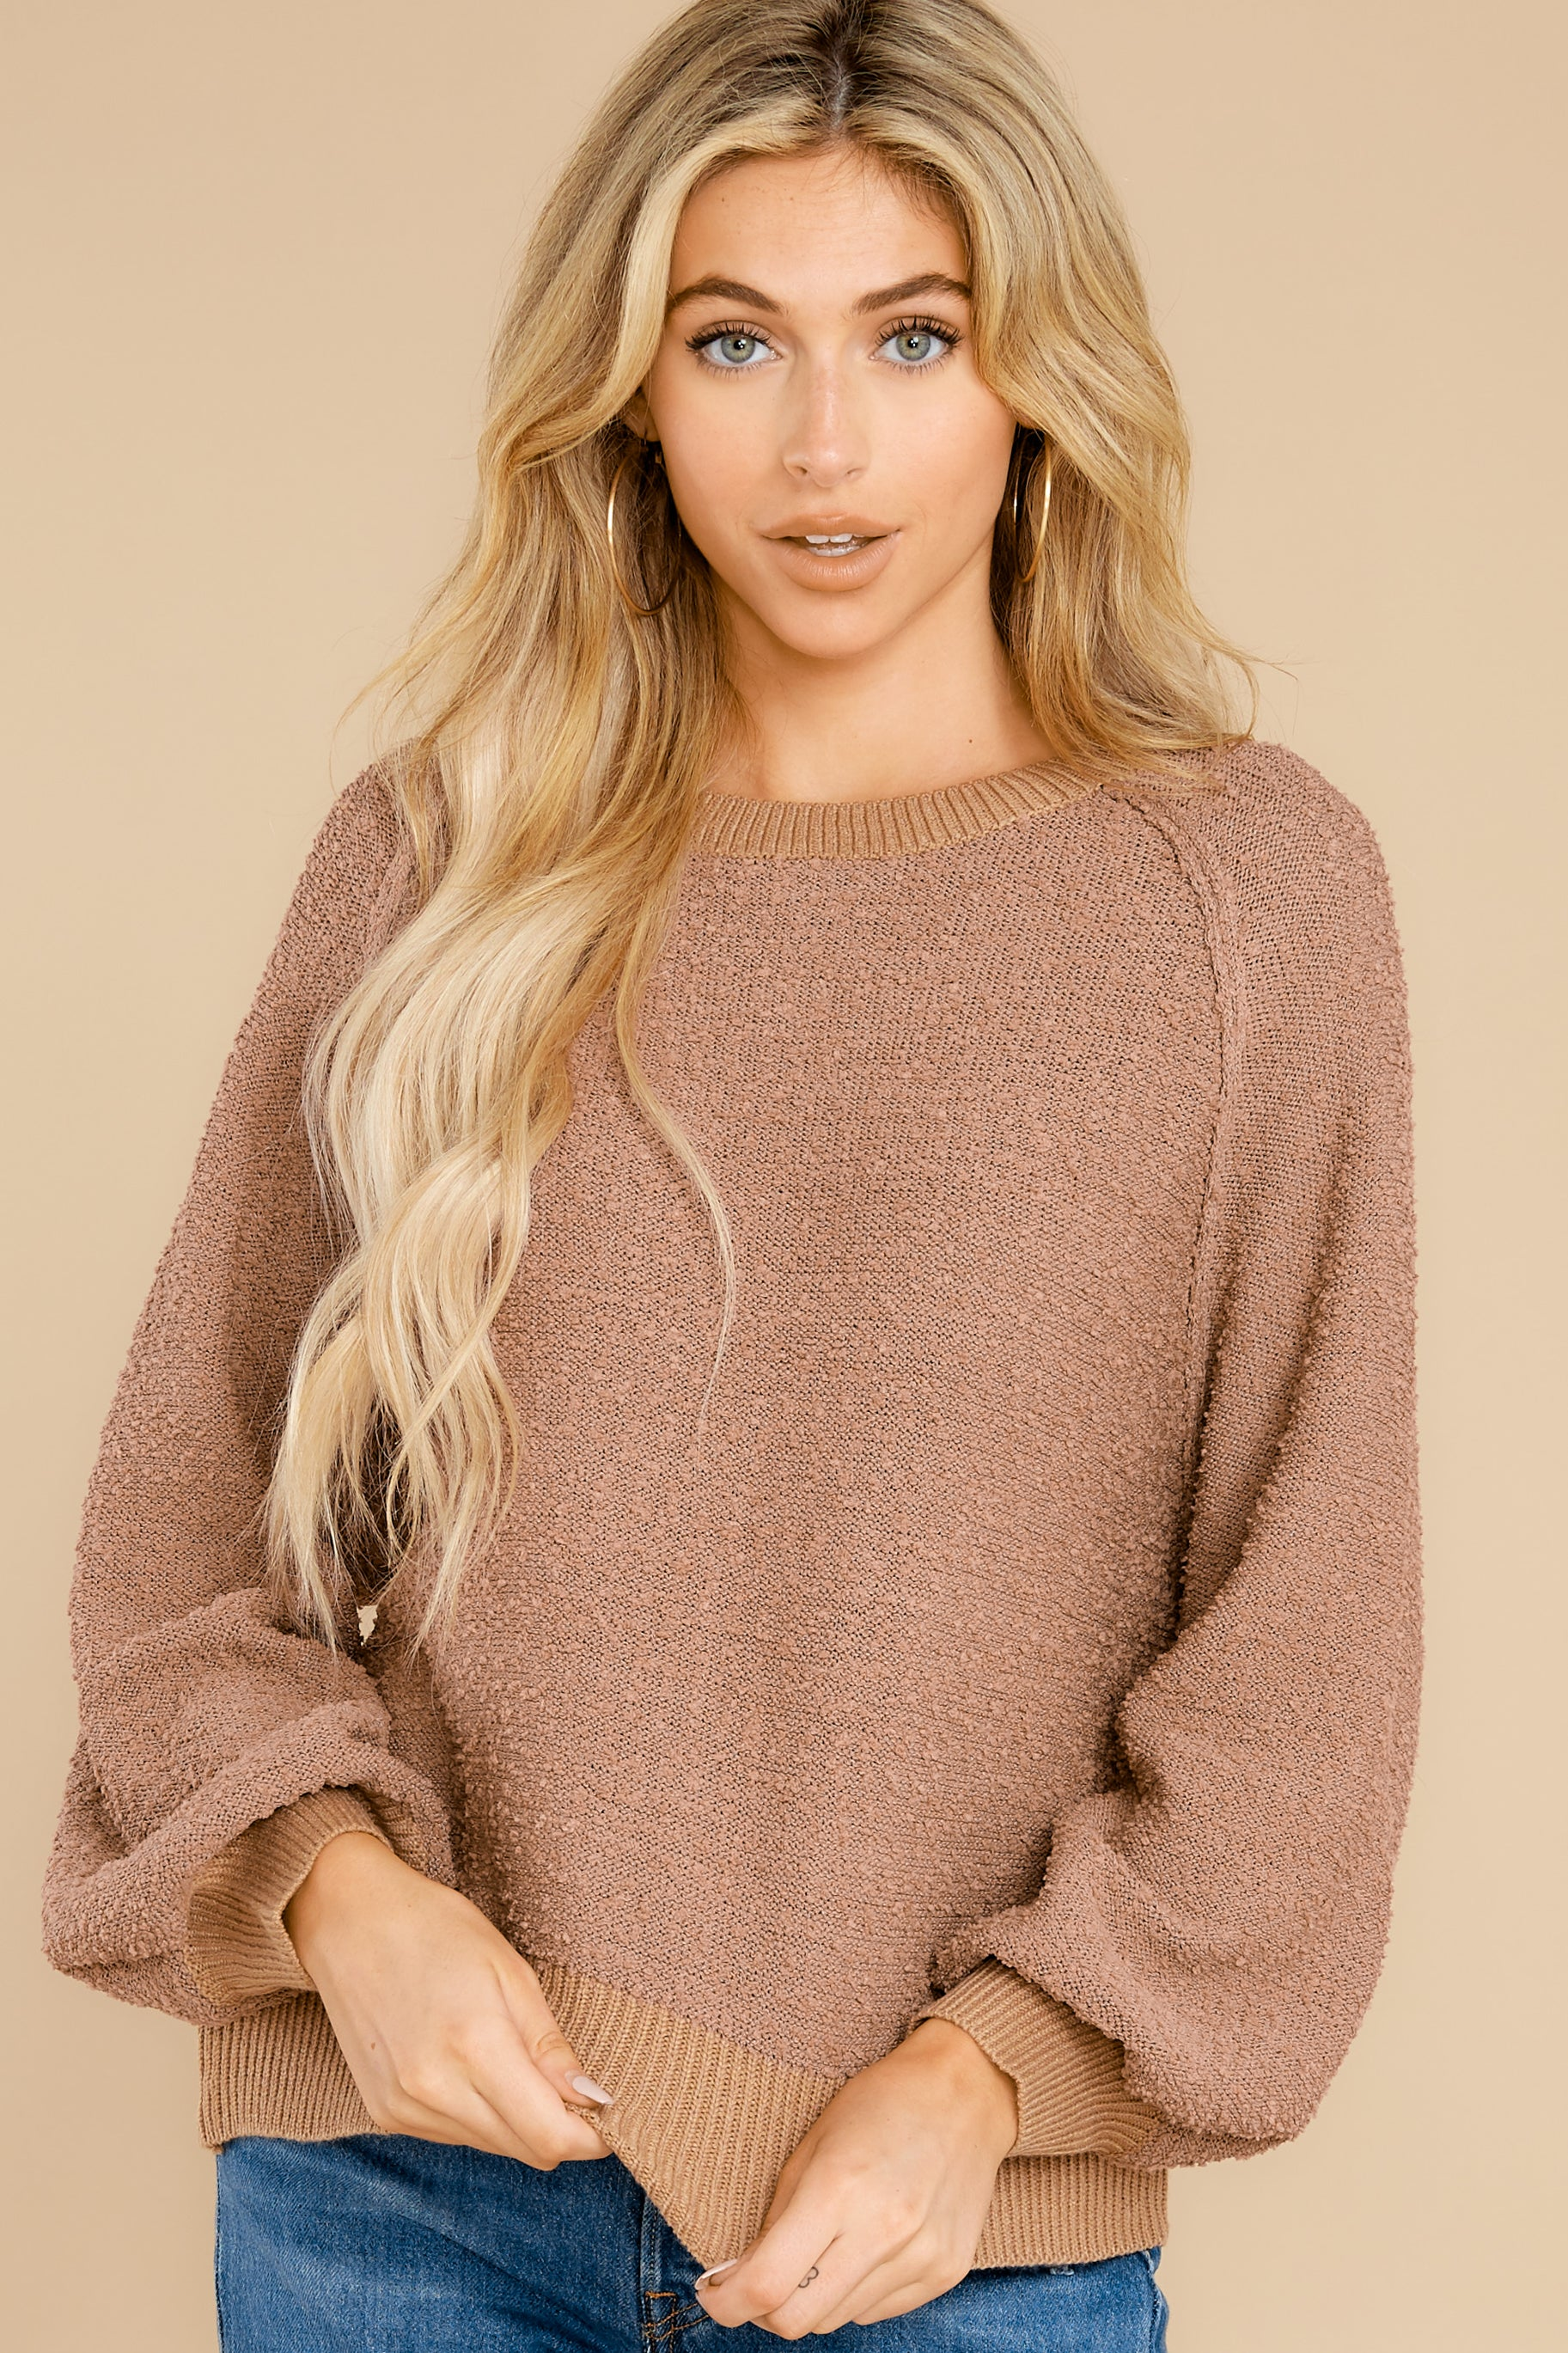 6 Feeling Carefree Mocha Sweater at reddress.com